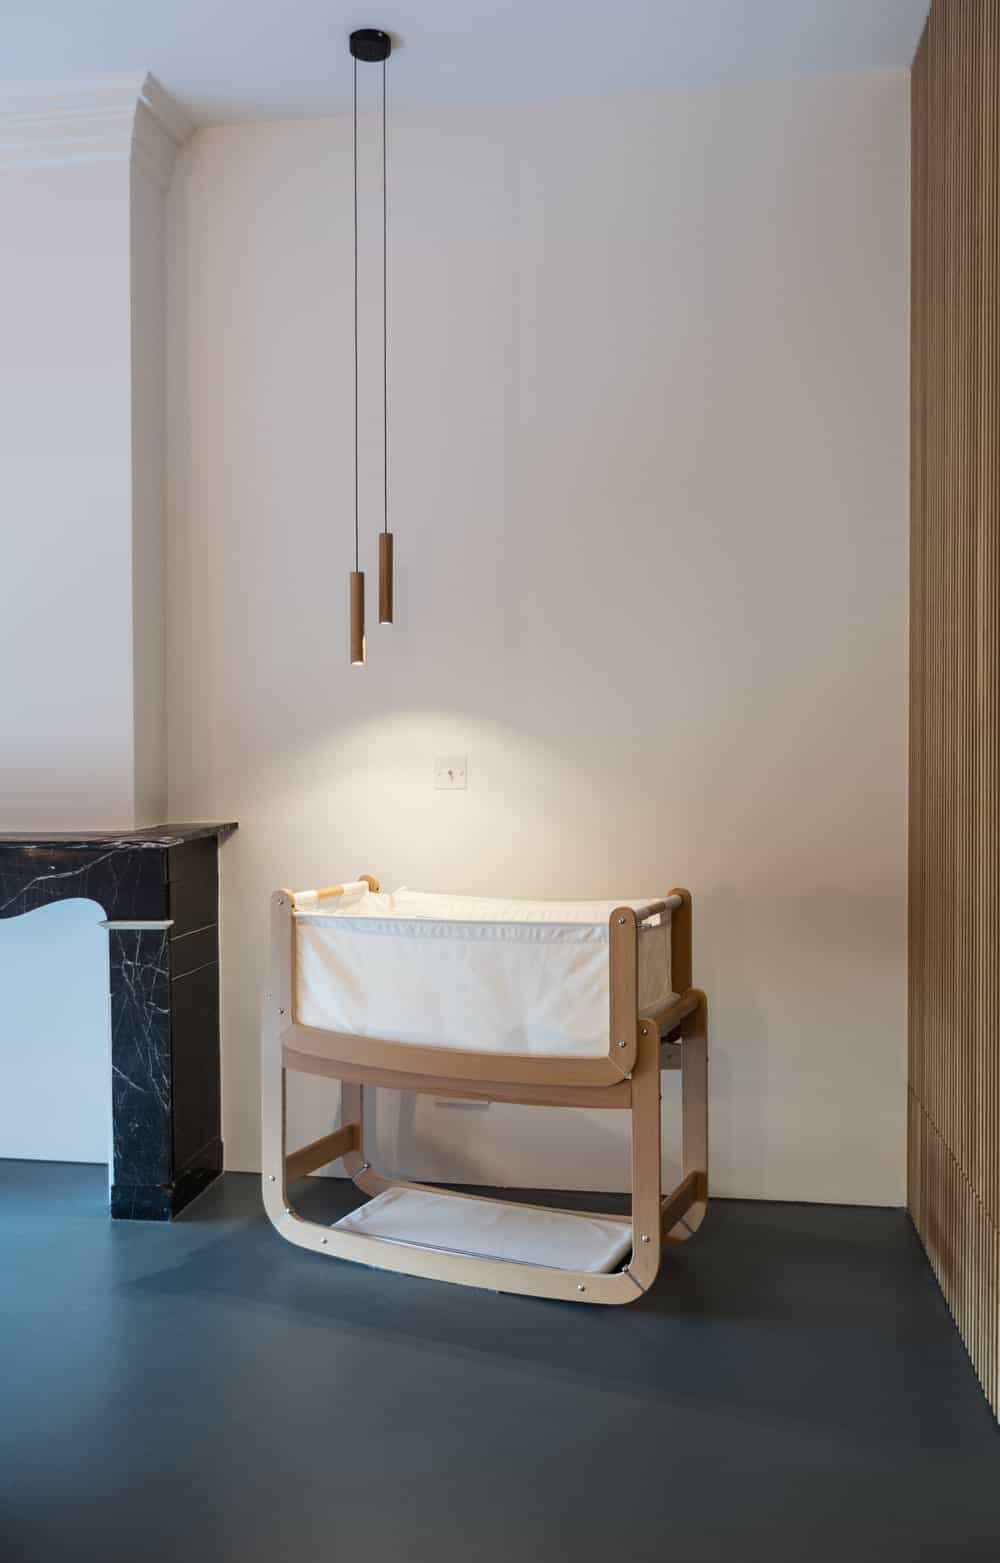 Cradle inside the primary bedroom in the Frans Halsstraat designed by Cantero Architecture.